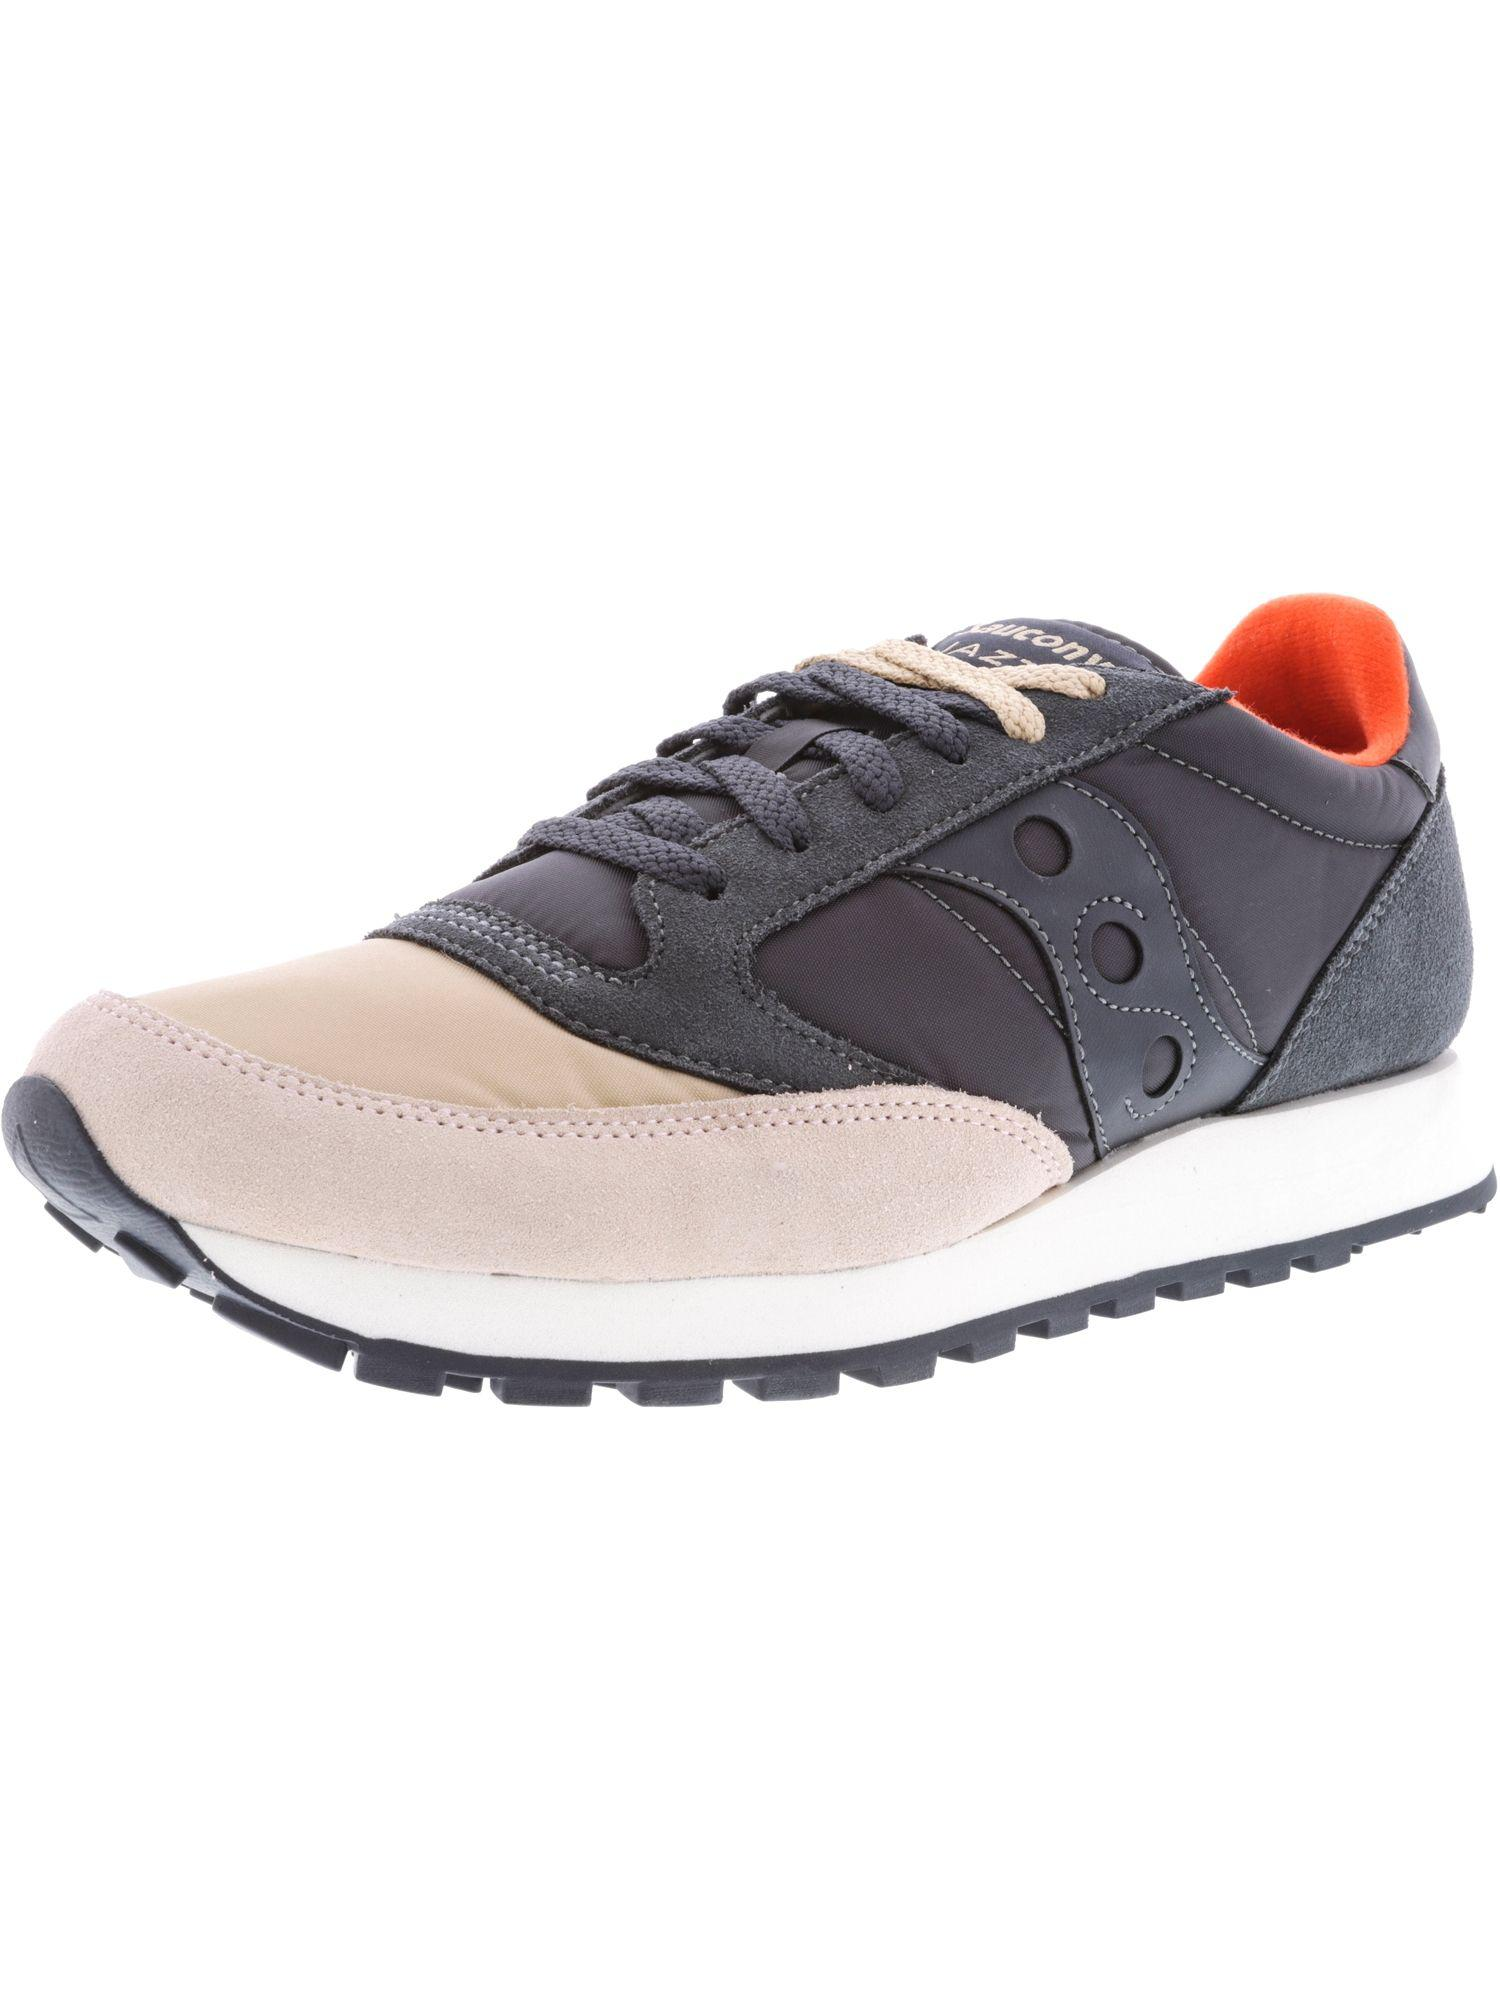 the latest 05f29 0ad45 Lyst - Saucony Men's Jazz Original Ankle-high Leather ...